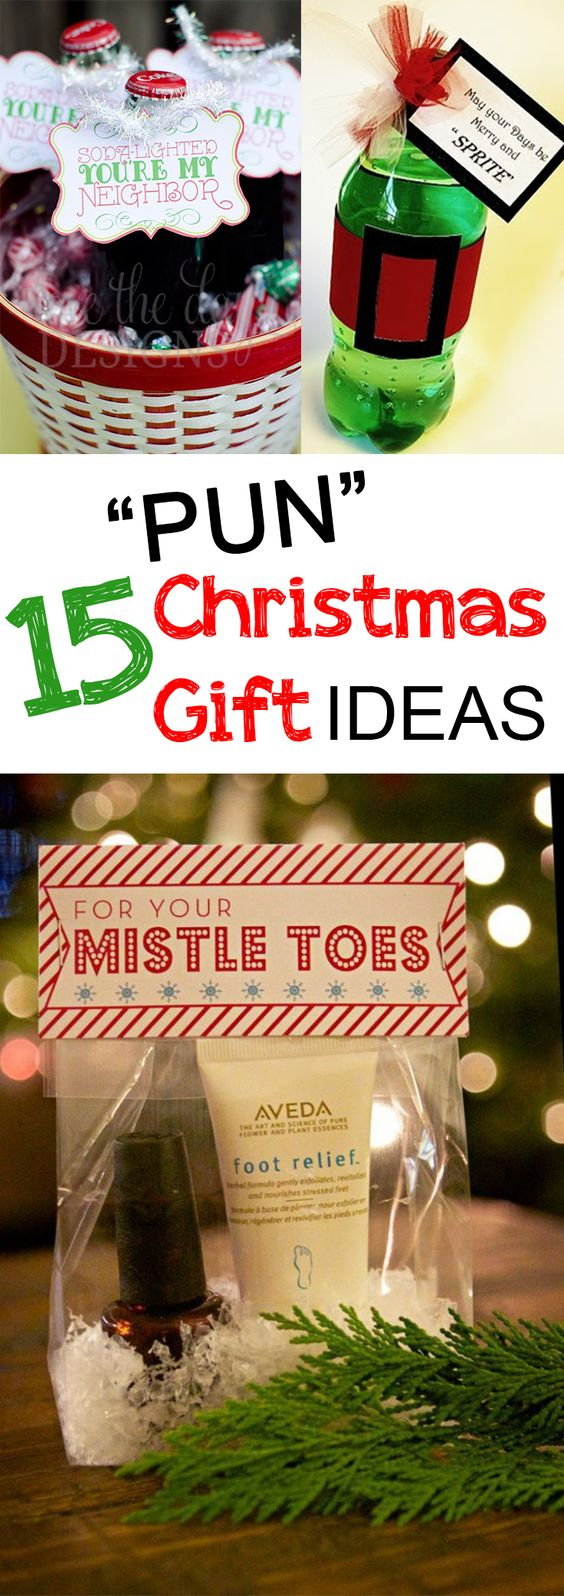 ... Gift Ideas Christmas gift ideas, Advent calendar and Neighbor gifts